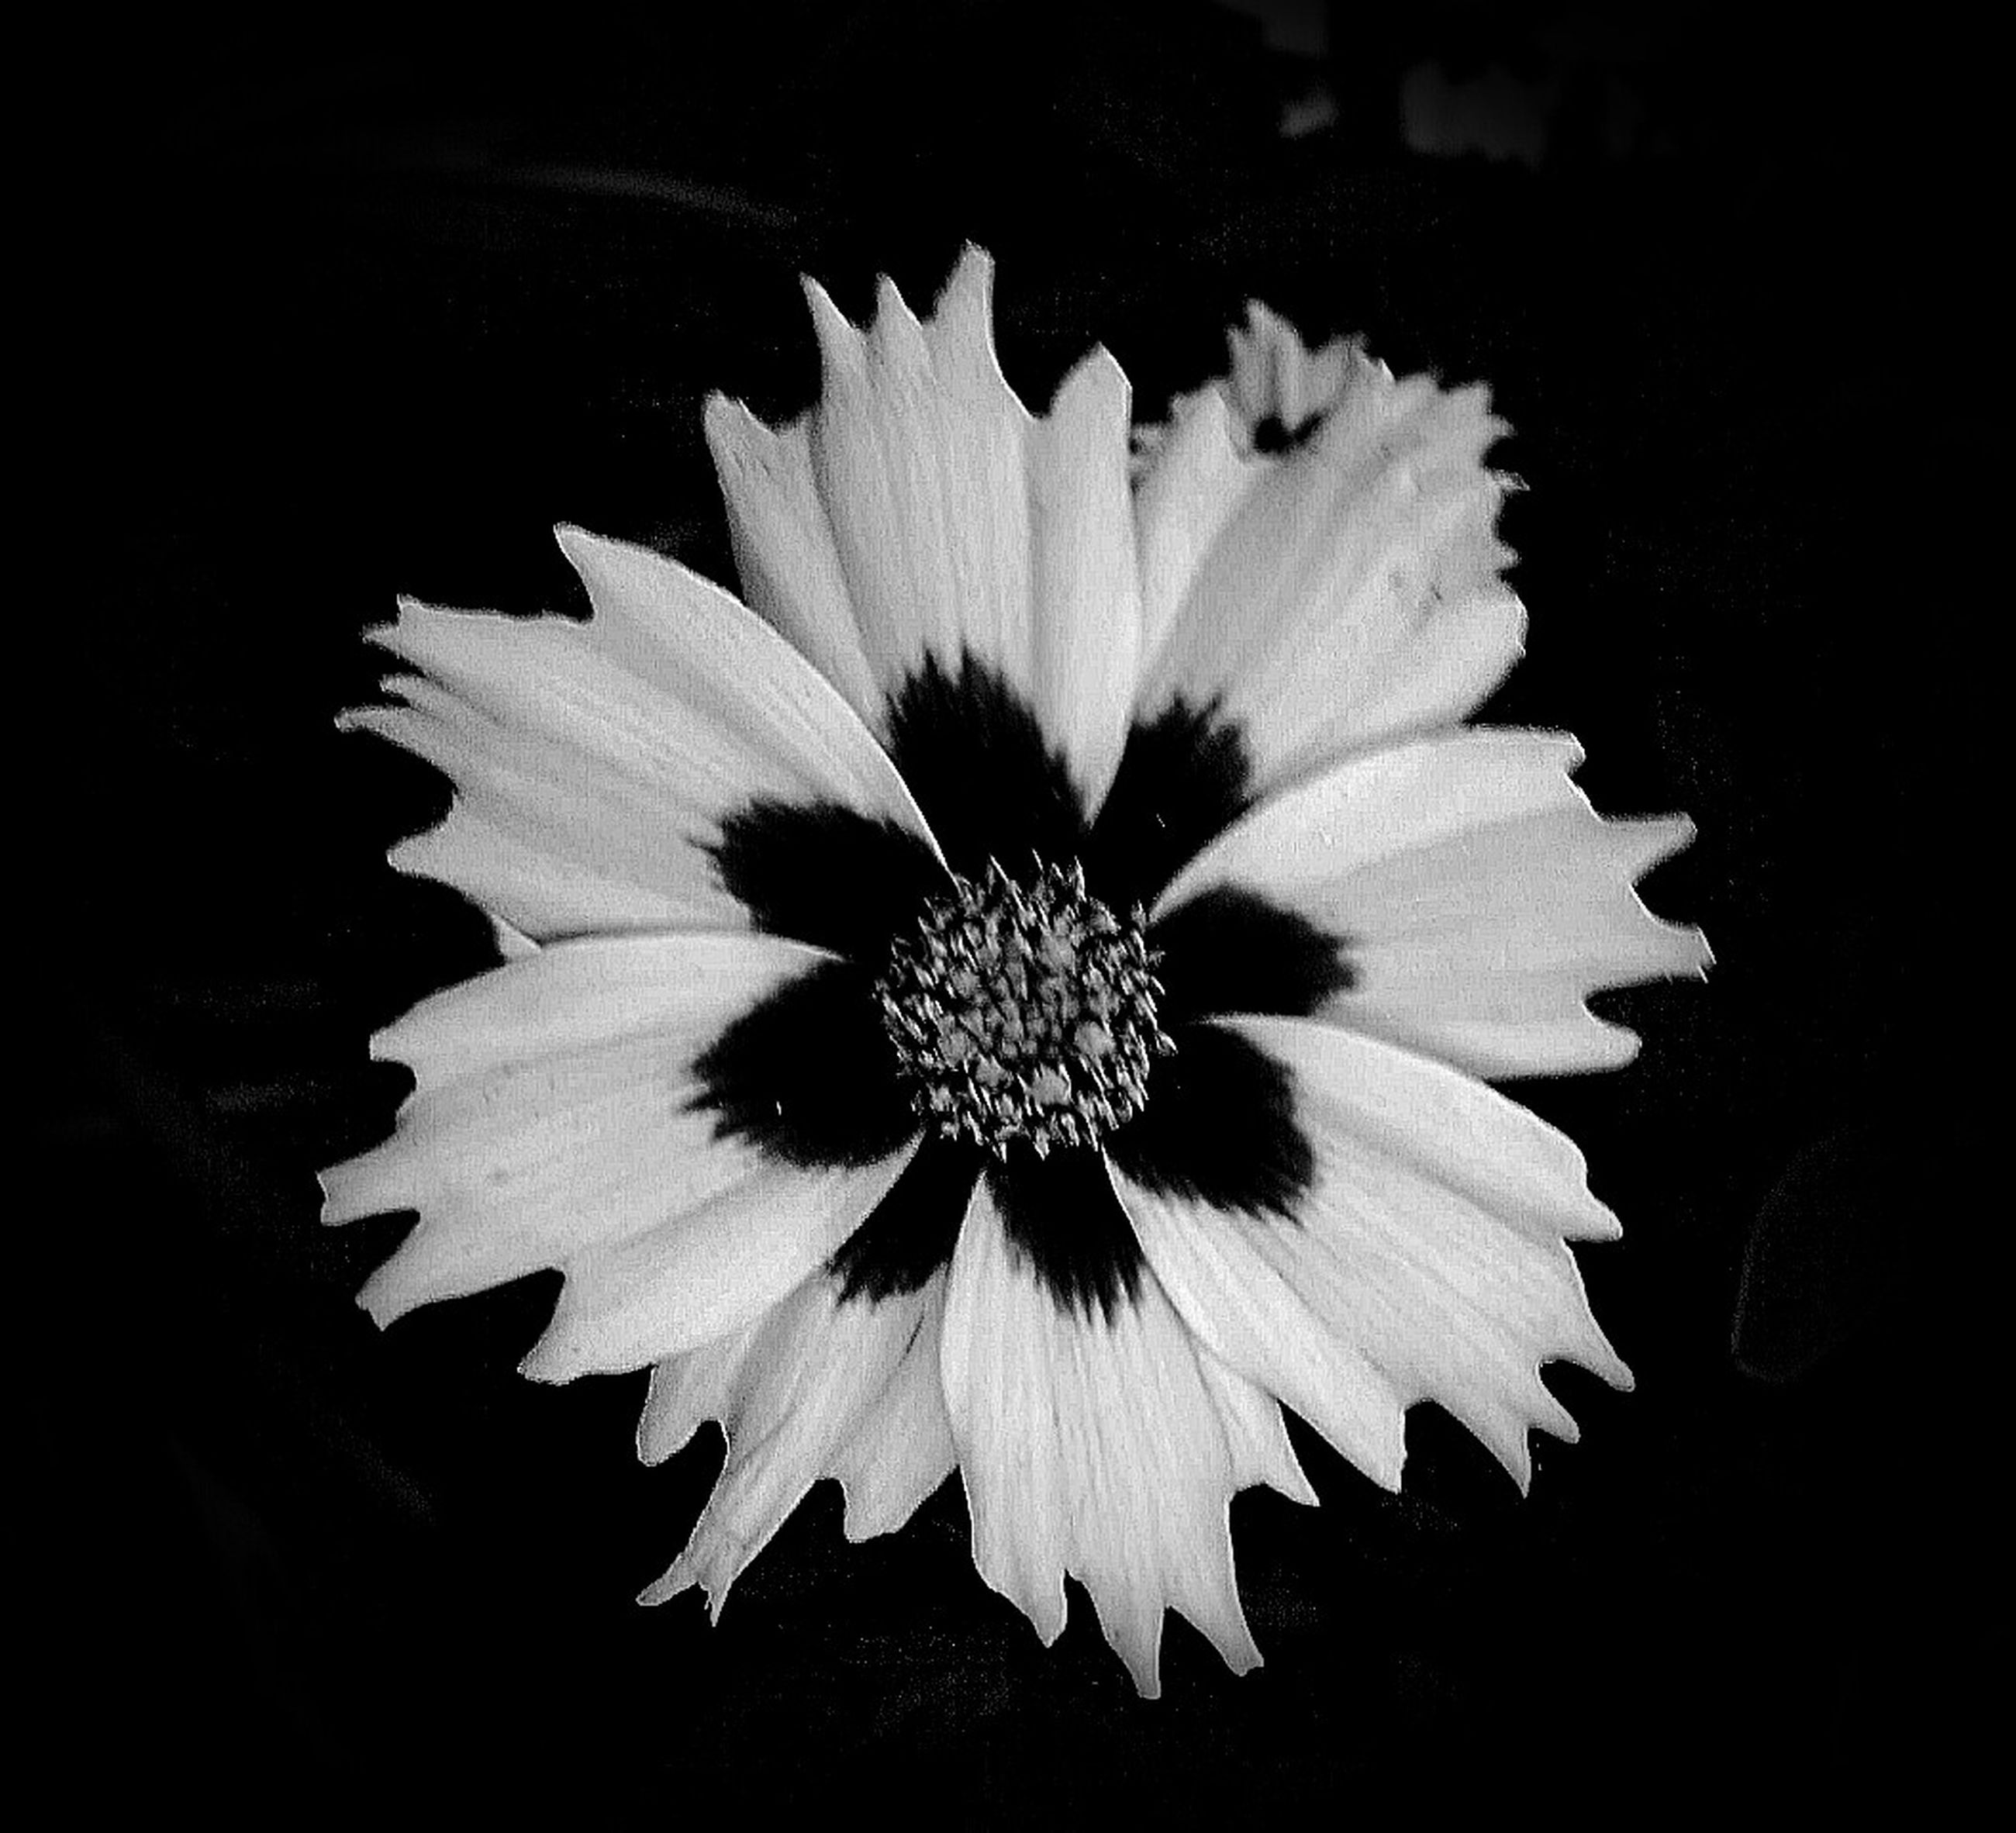 flower, petal, flower head, single flower, fragility, close-up, freshness, black background, studio shot, beauty in nature, growth, pollen, nature, blooming, no people, high angle view, plant, white color, focus on foreground, outdoors